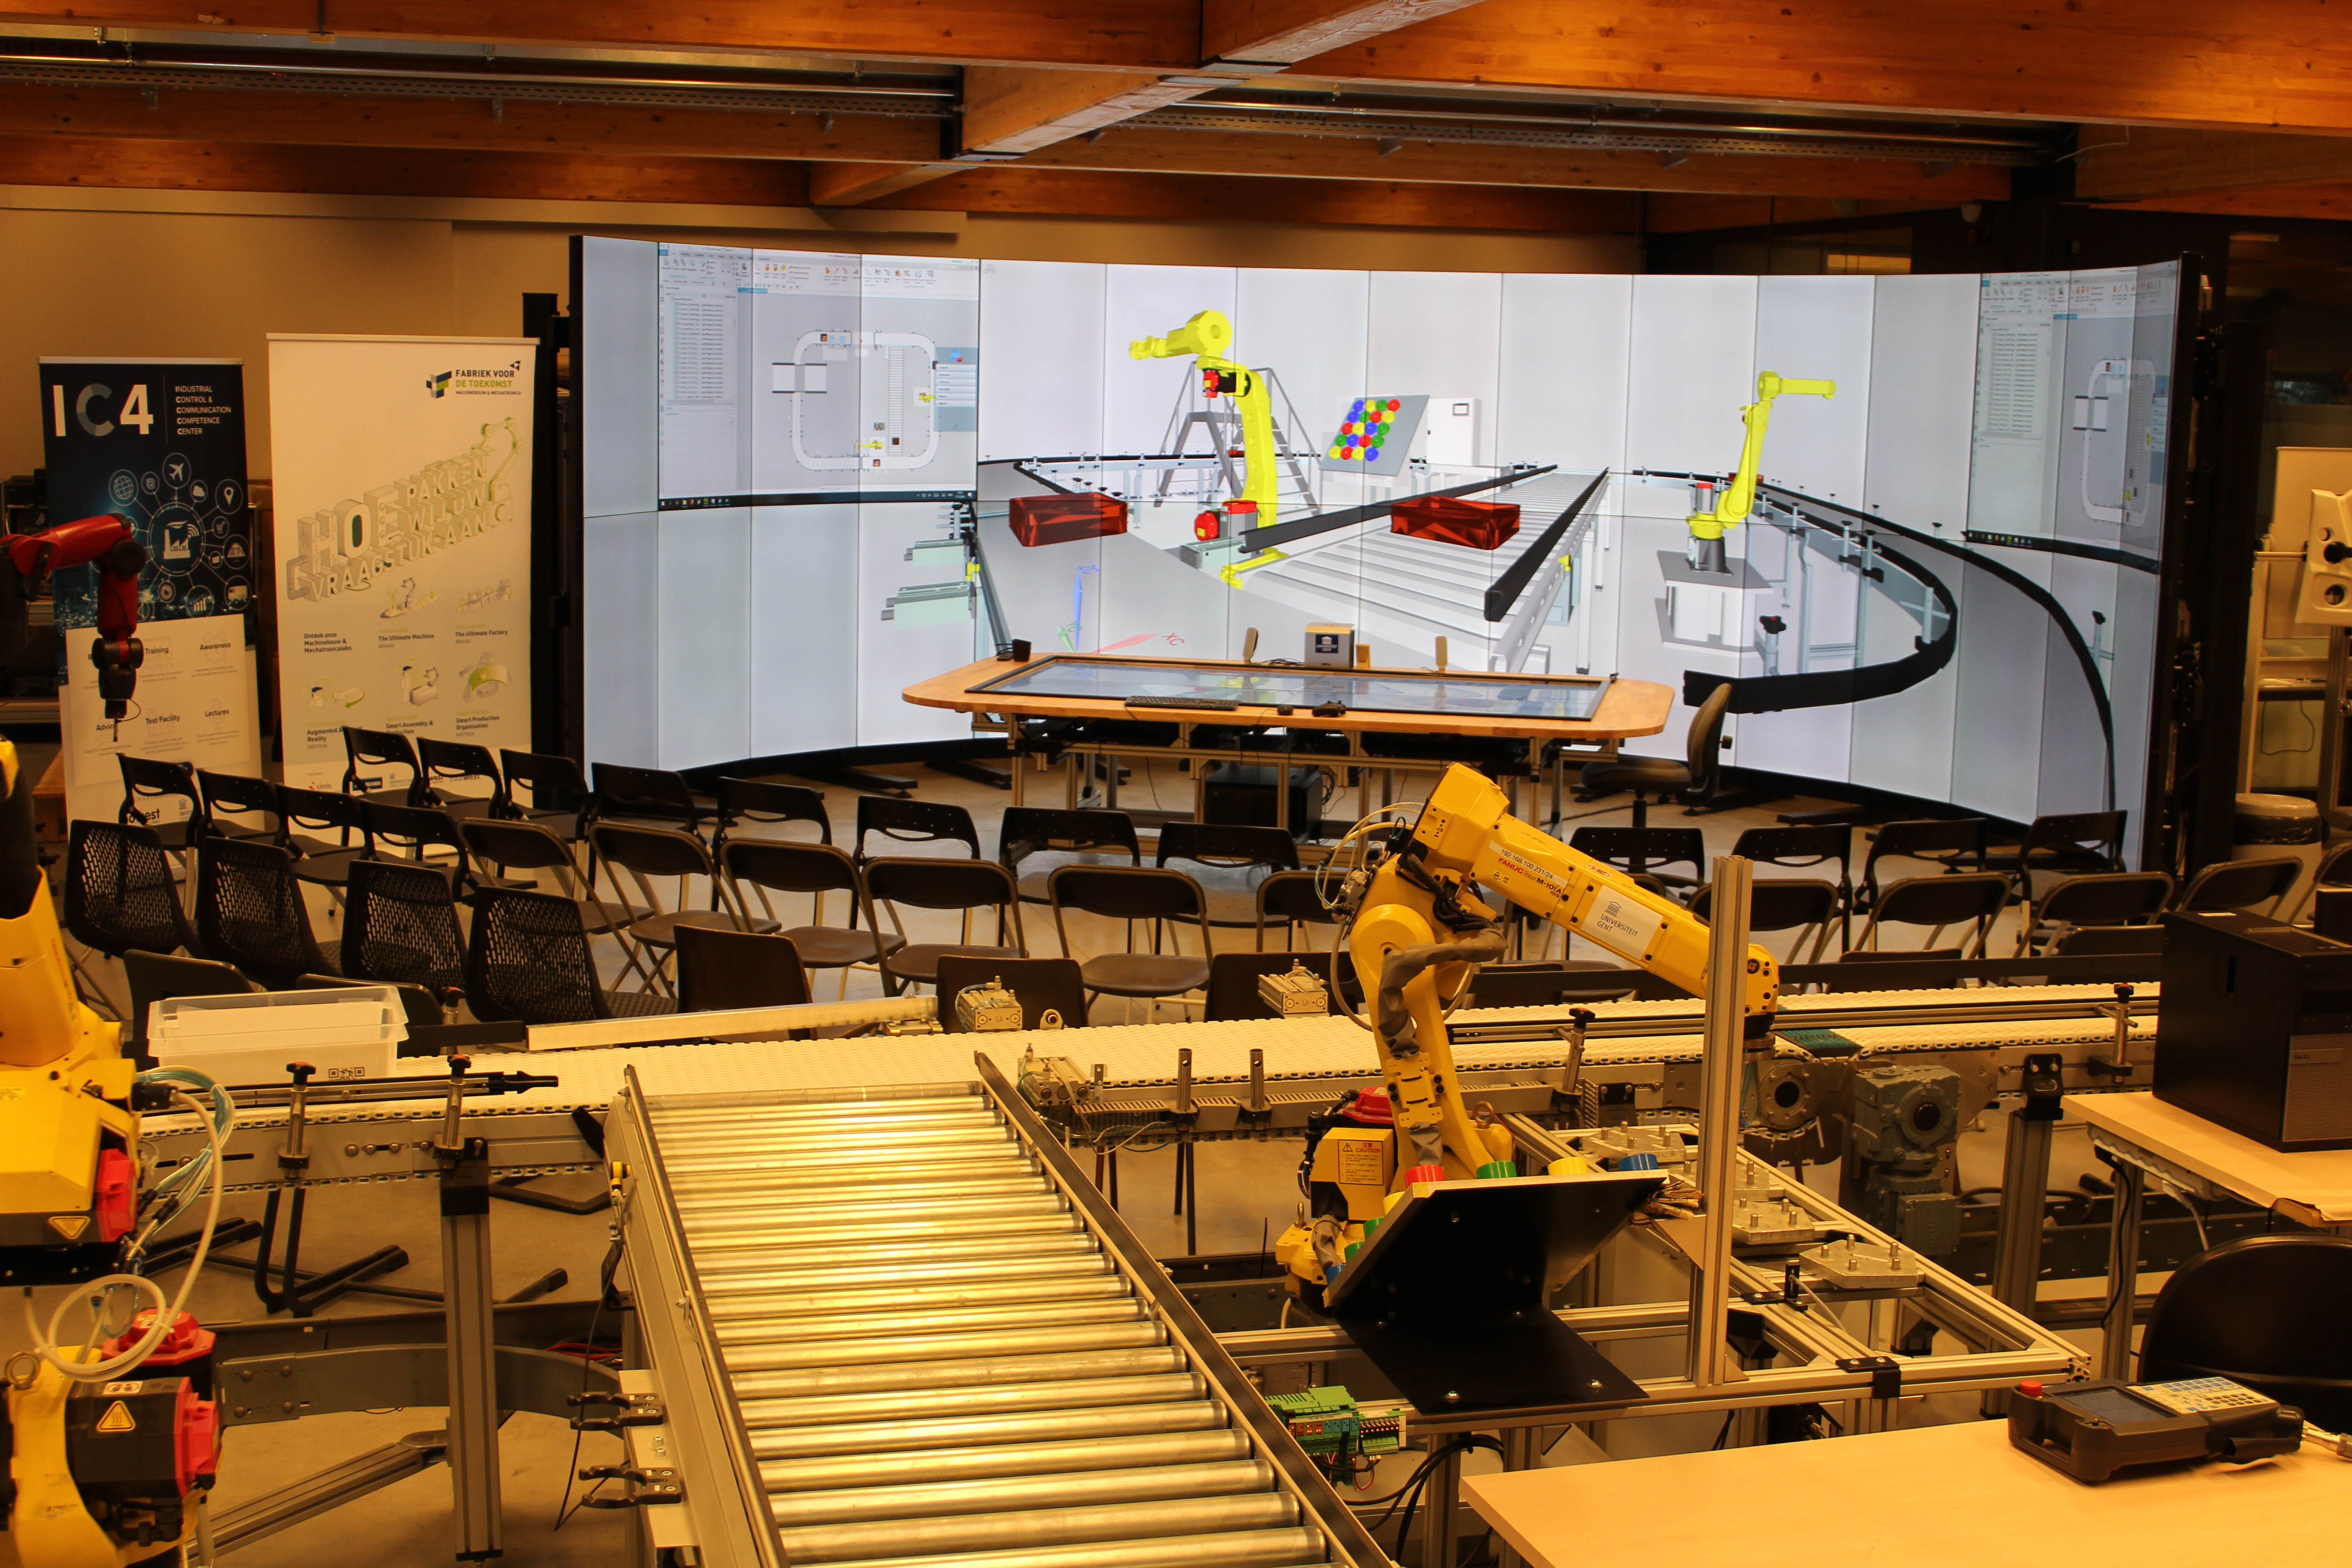 The Digital Twin in VR at Ghent University